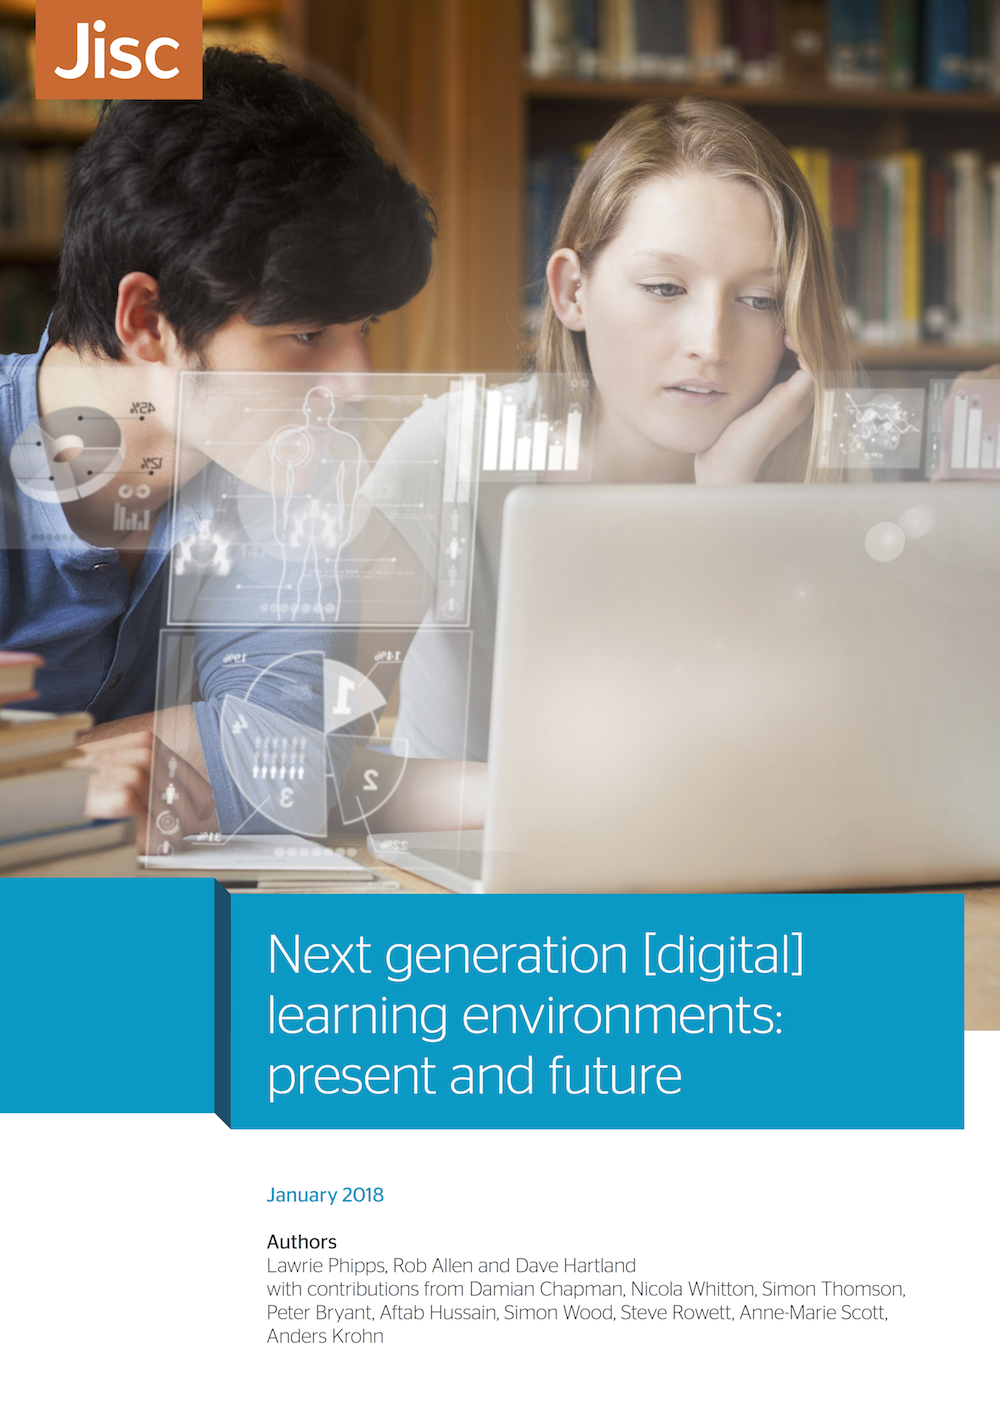 The Jisc Next Generation Digital Learning Environments Report